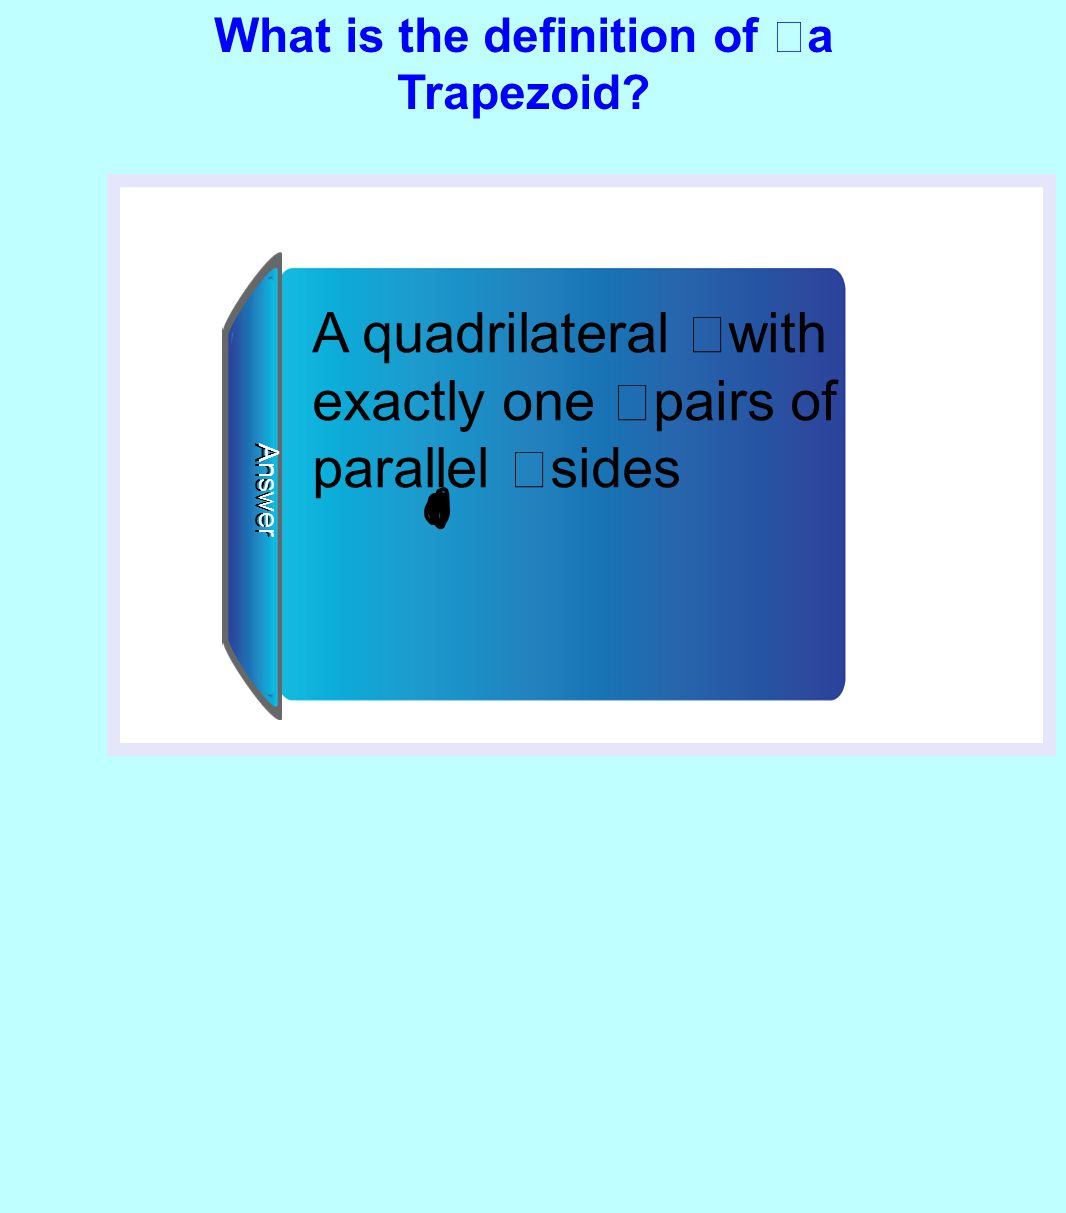 What is the definition of a Trapezoid